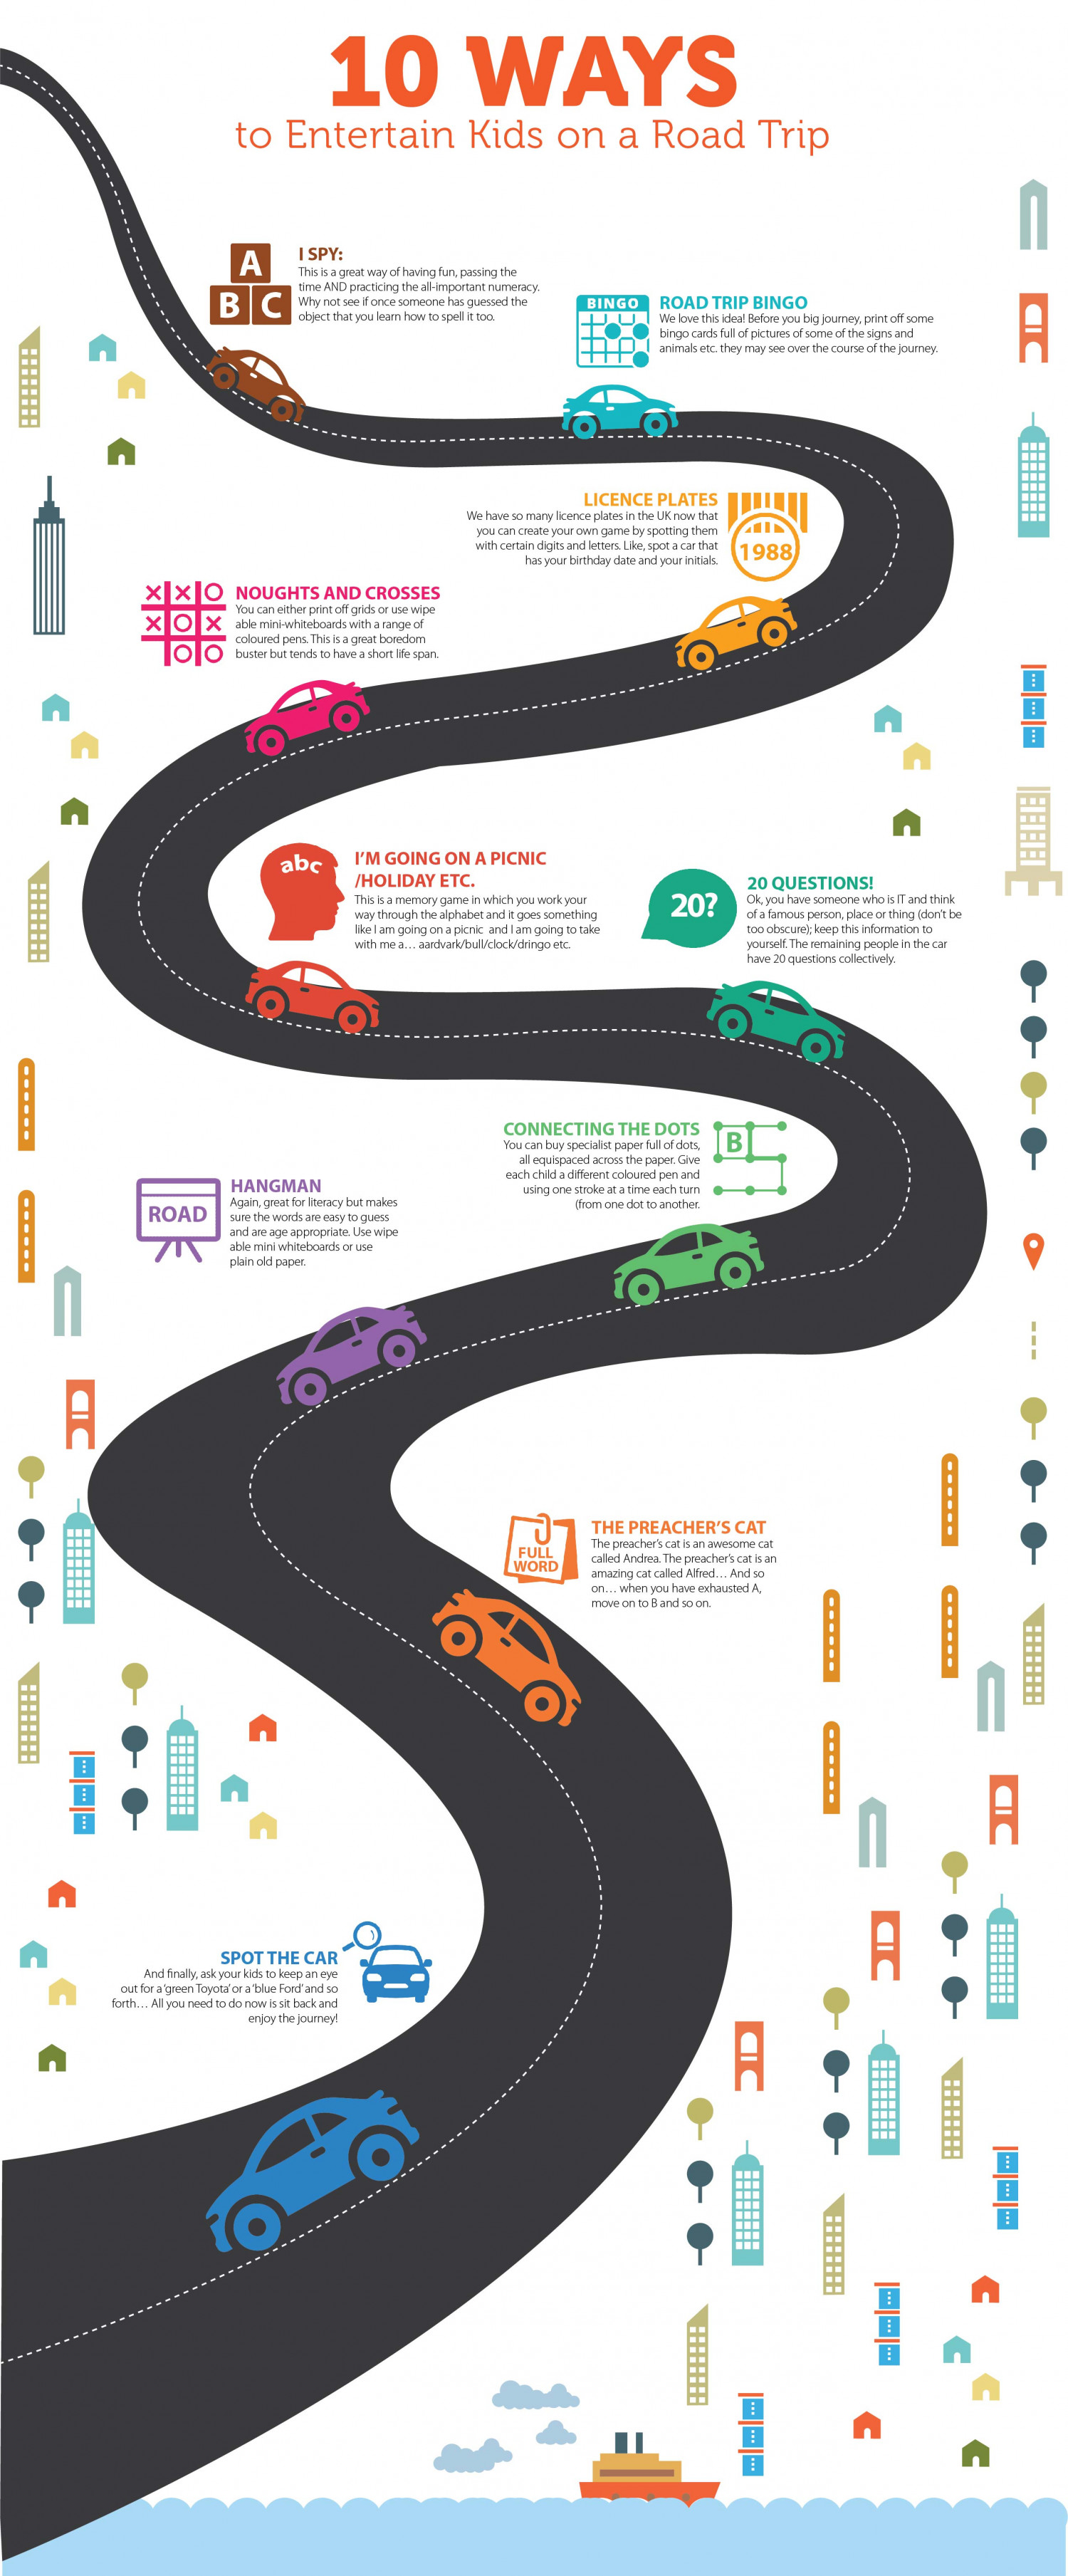 10 Ways to Entertain Kids on a Road Trip Infographic